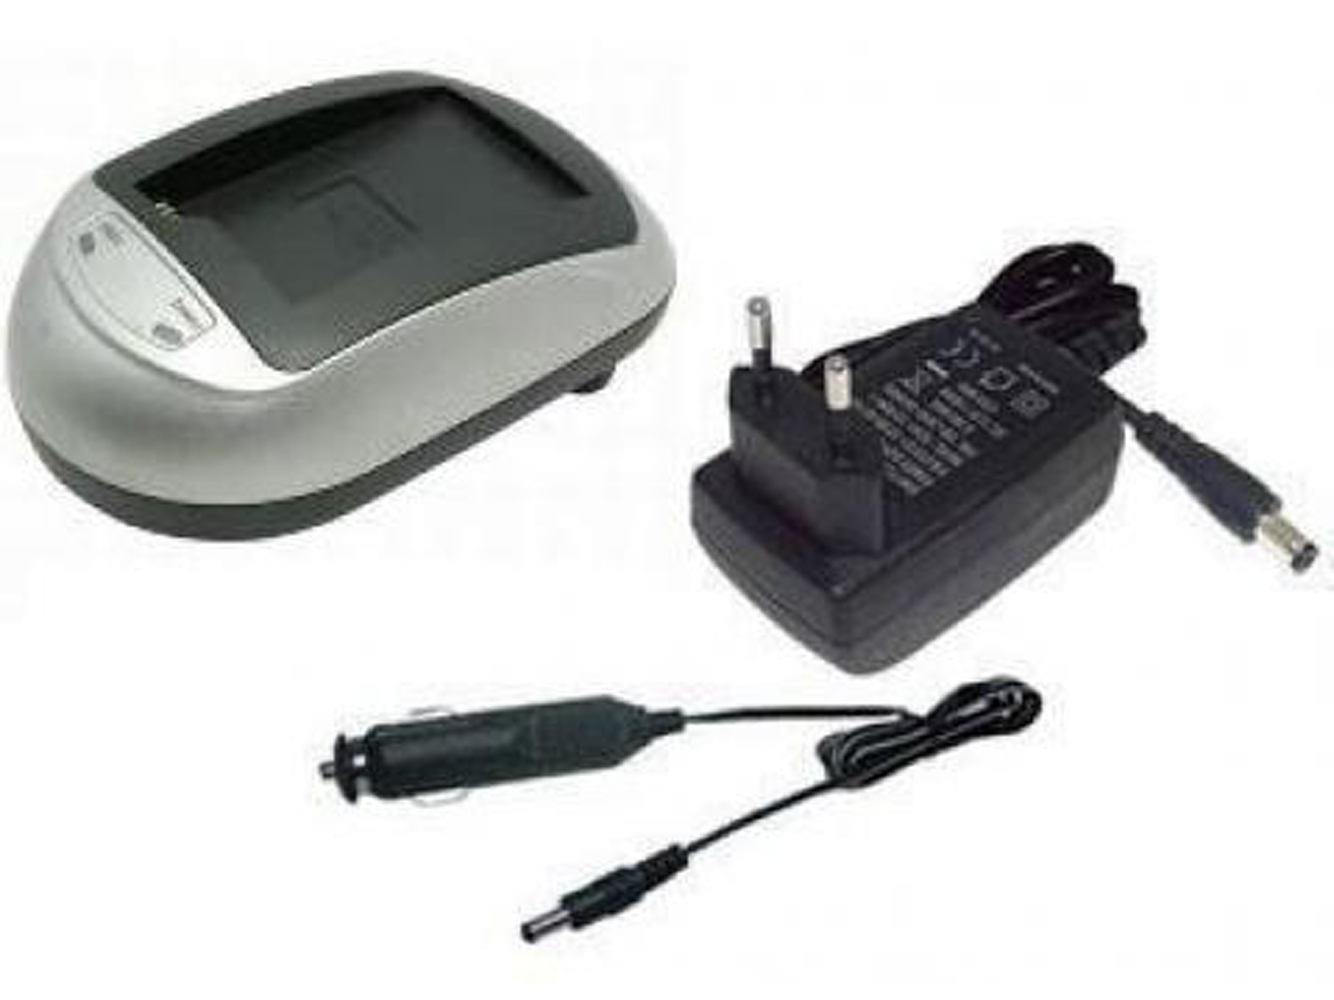 Battery Charger for SONY PSP-110, PSP-191